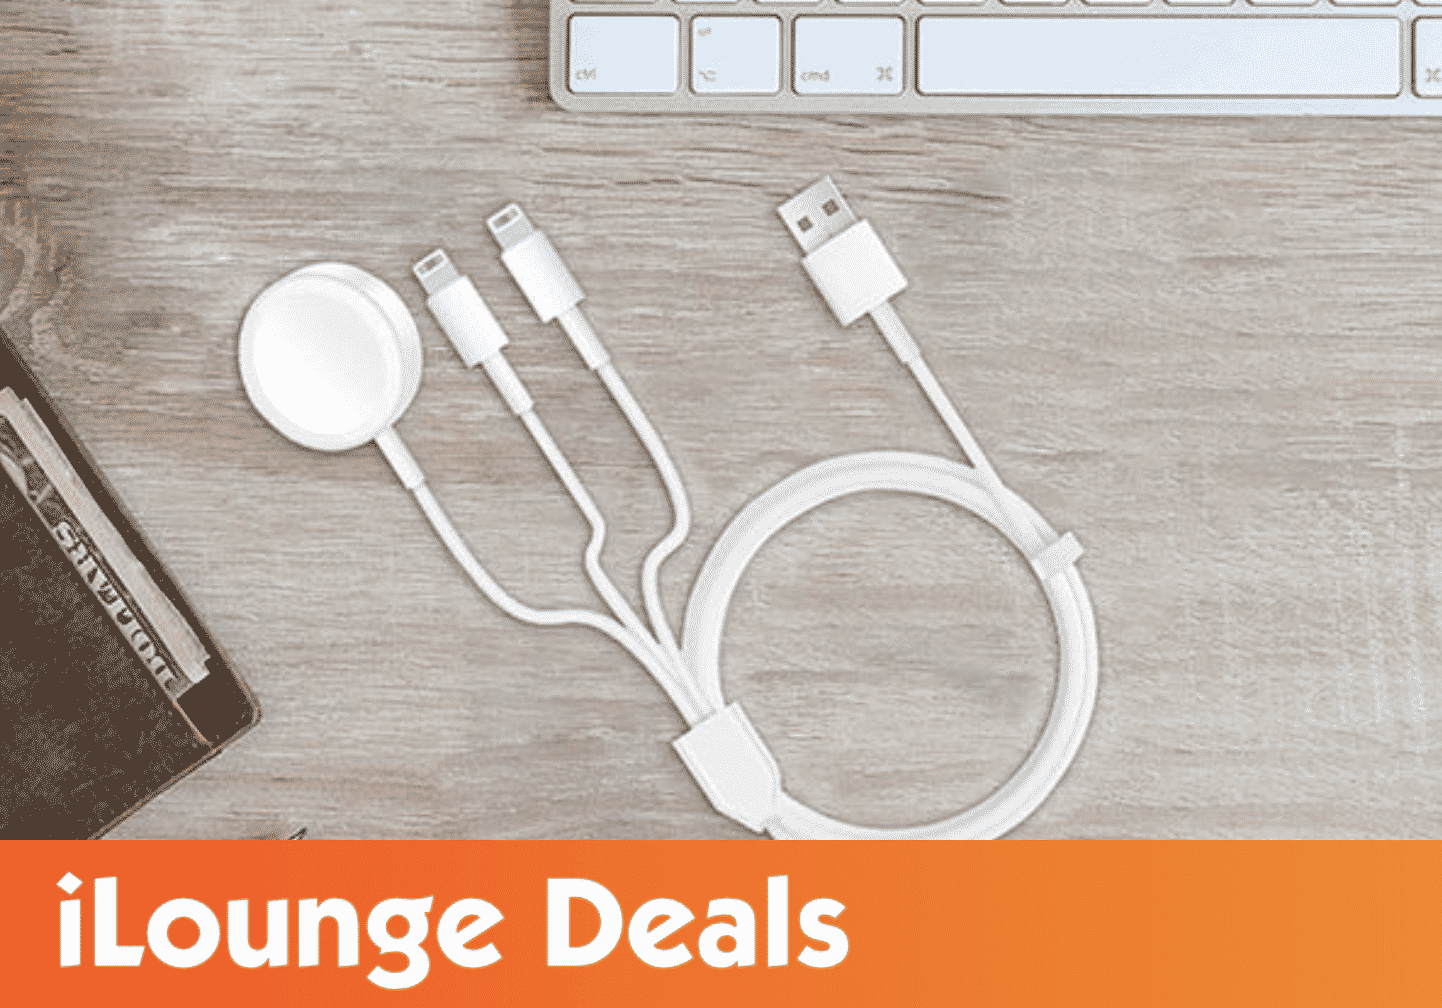 3-in-1 Apple Watch, AirPods & iPhone Charger is 28% Off